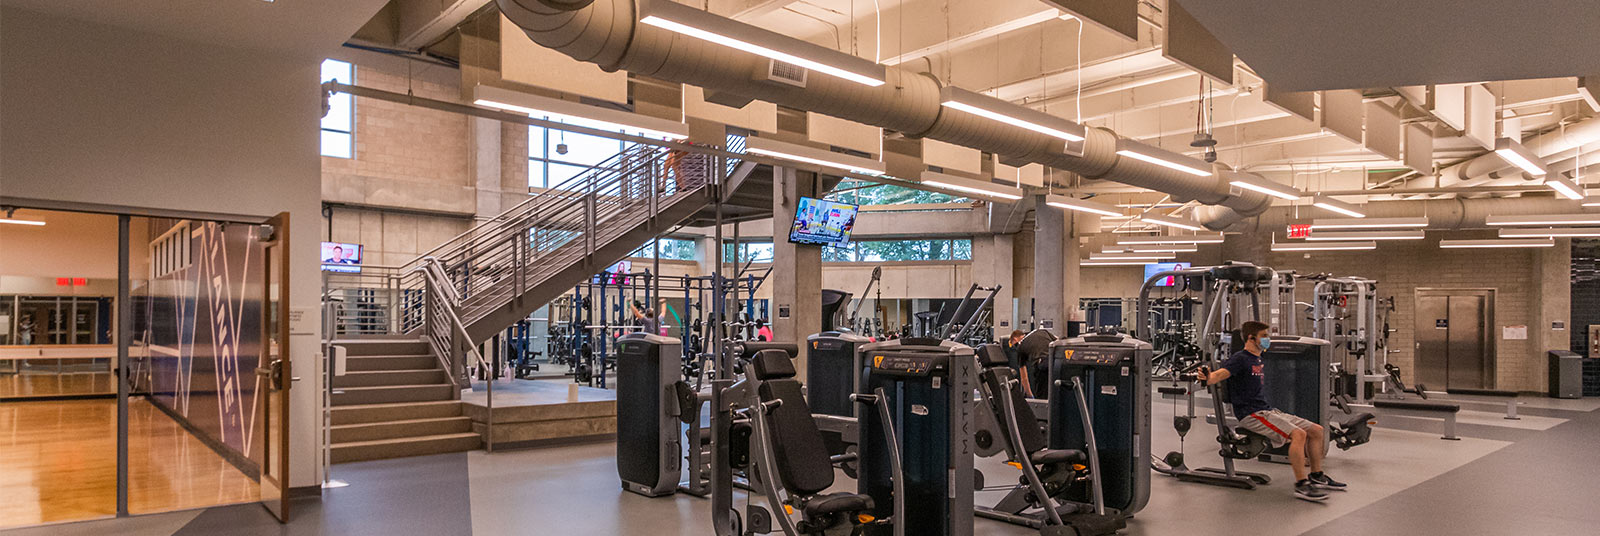 Two-story fitness center in the Health United Building at Xavier University.